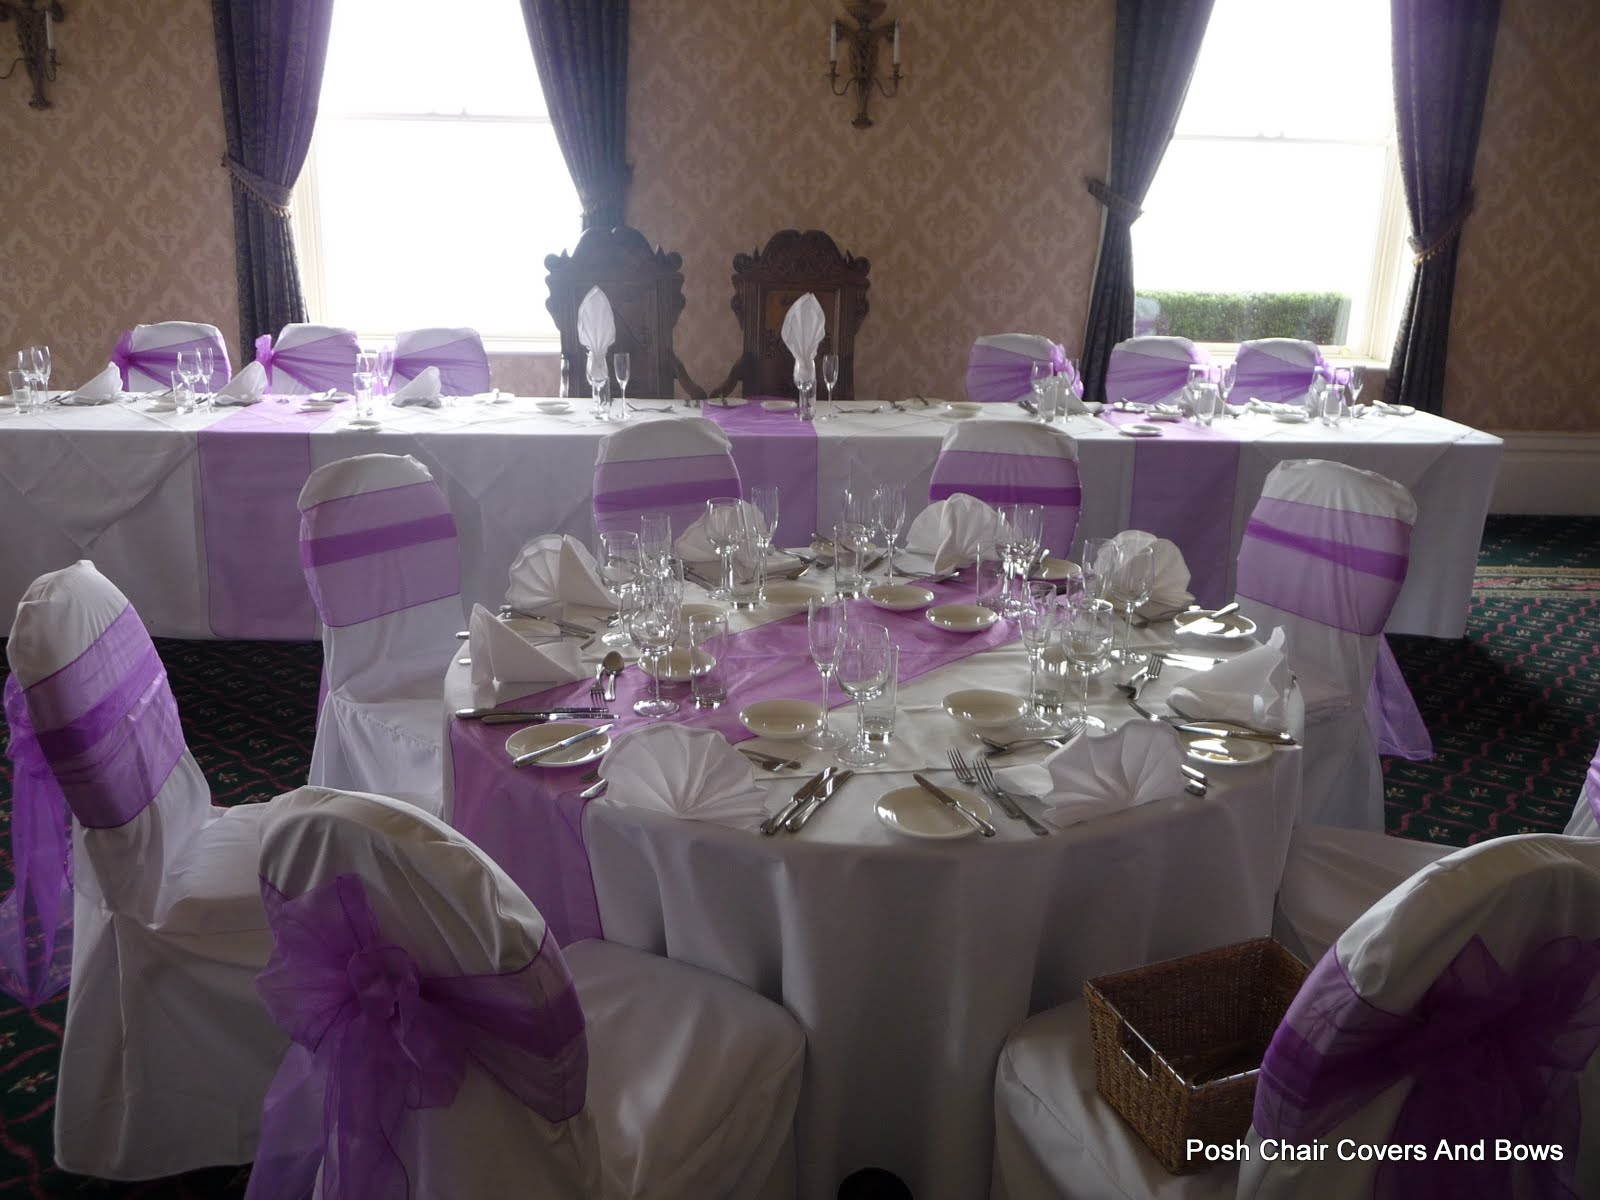 Posh Chair Covers & Bows Chiavari Chairs Flower Wall